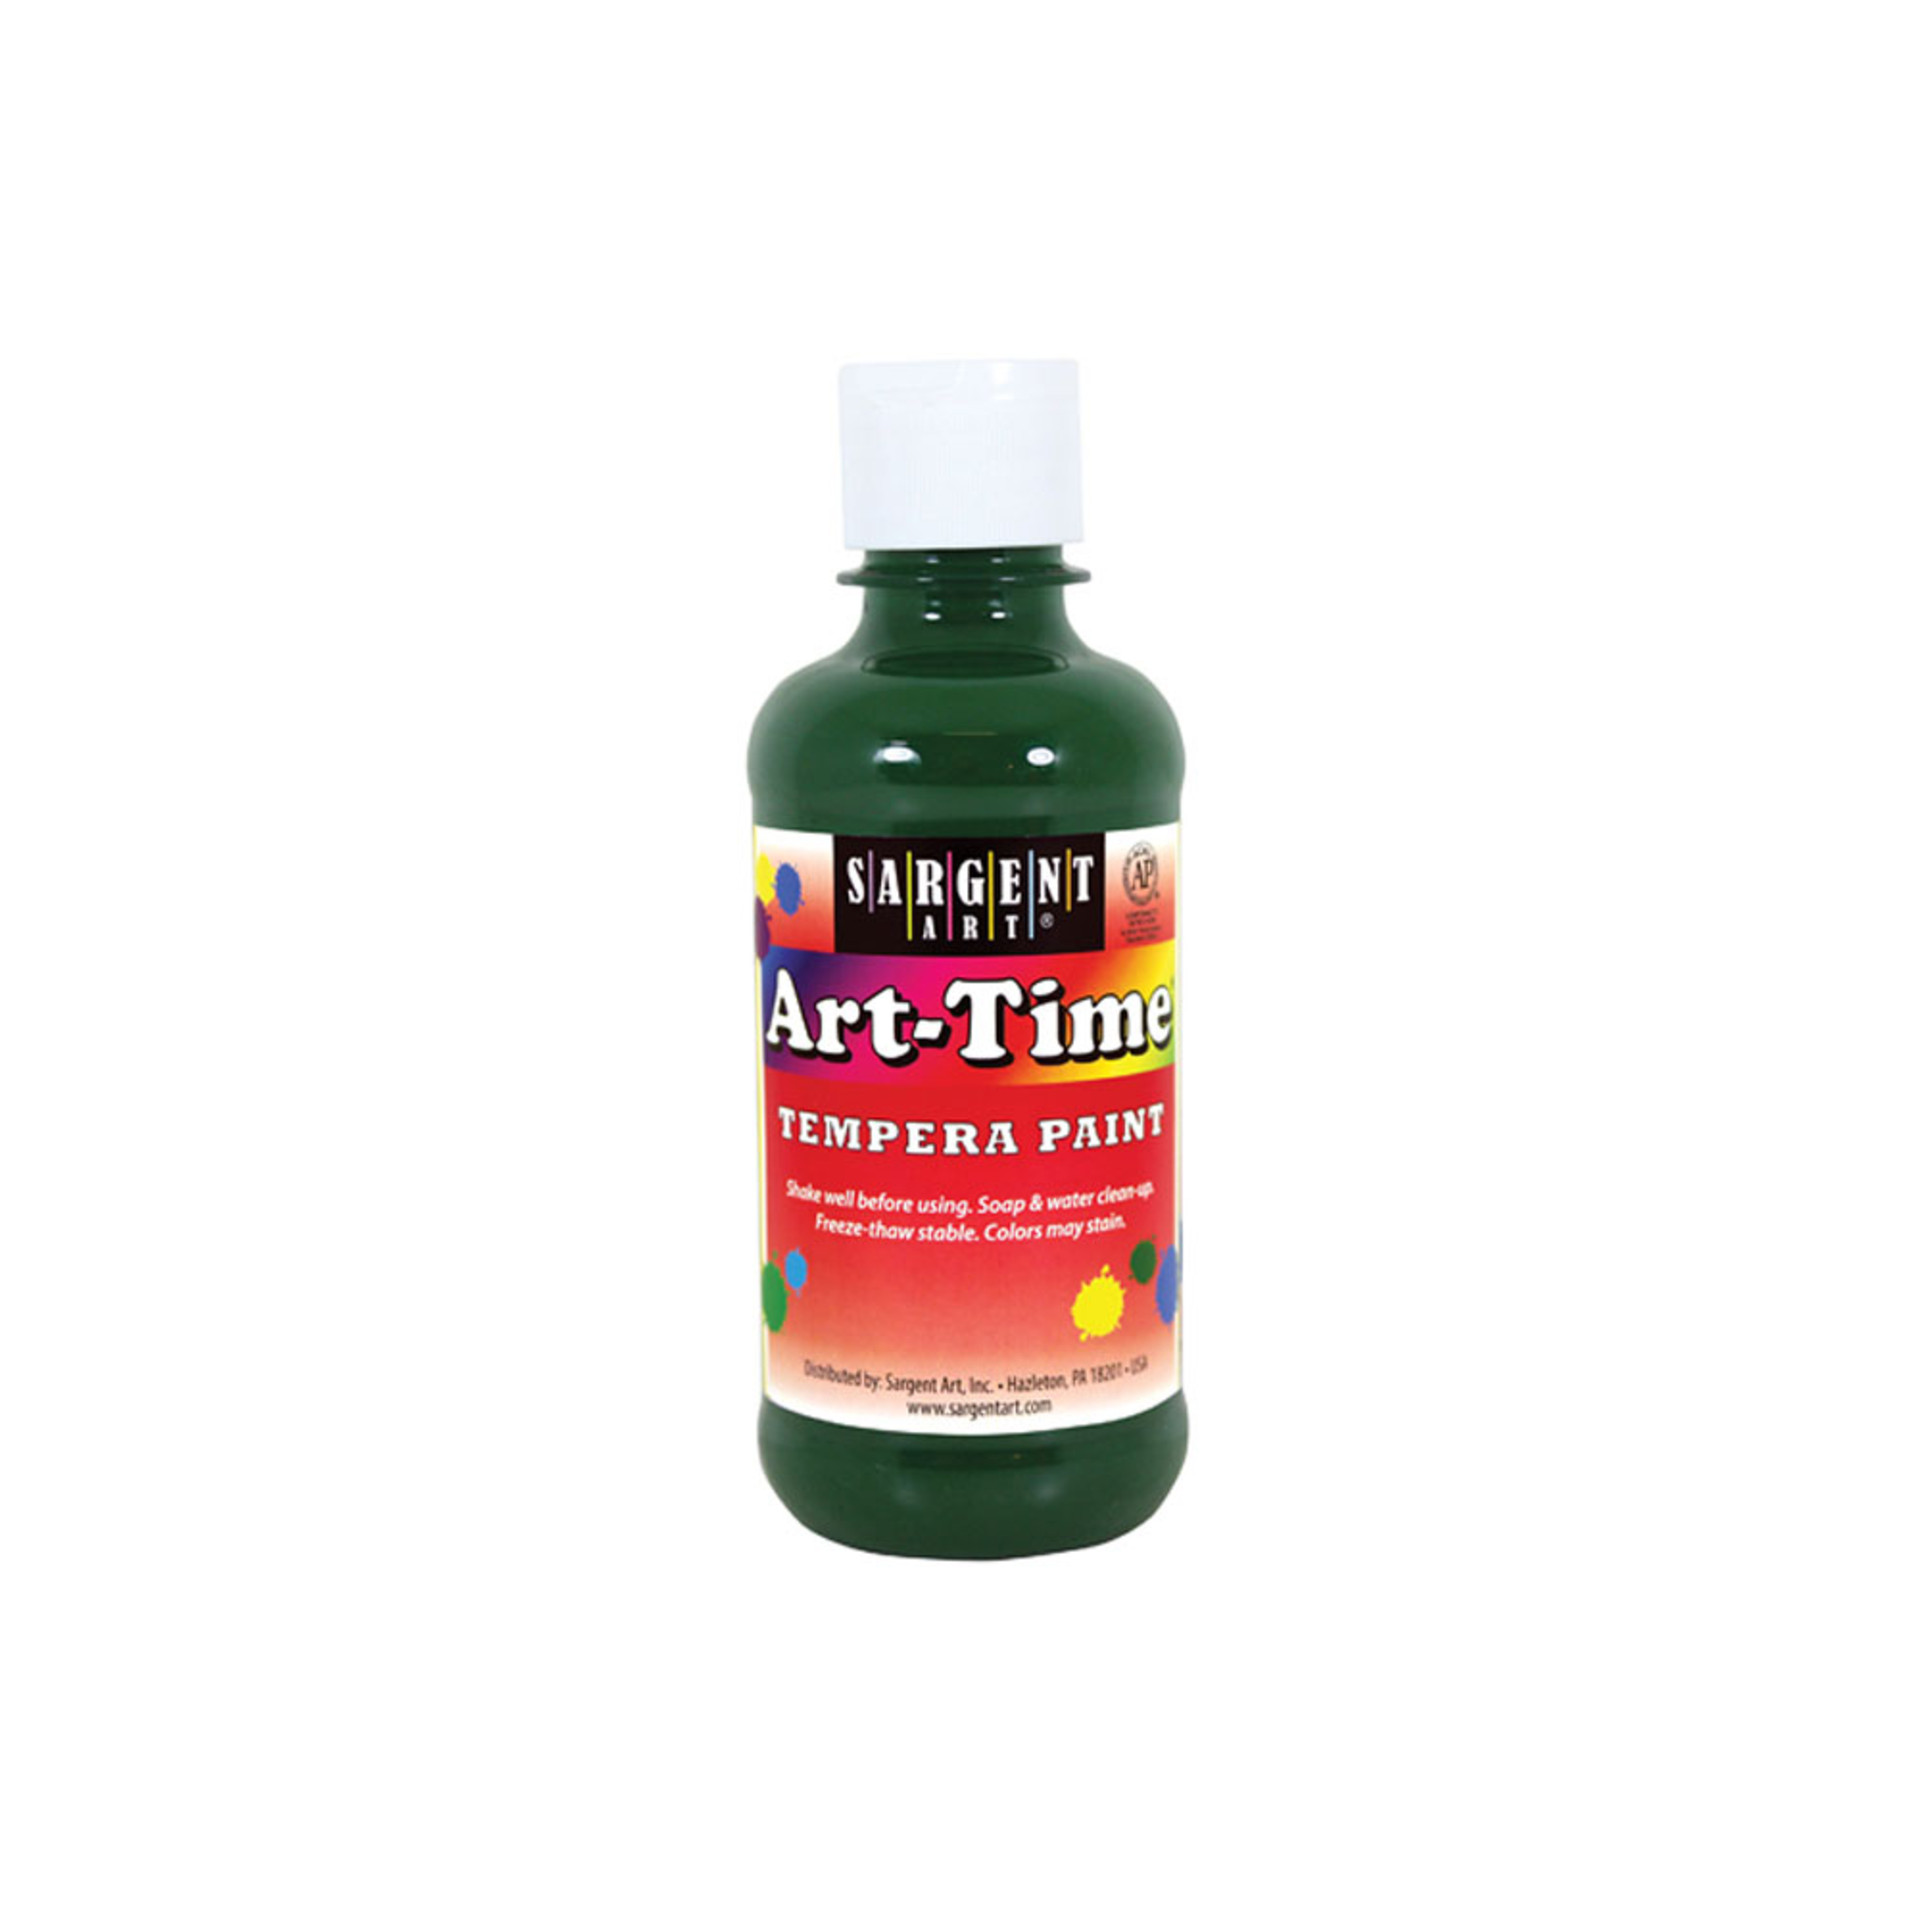 Sargent Art Time 8oz. Tempera Paint – Green